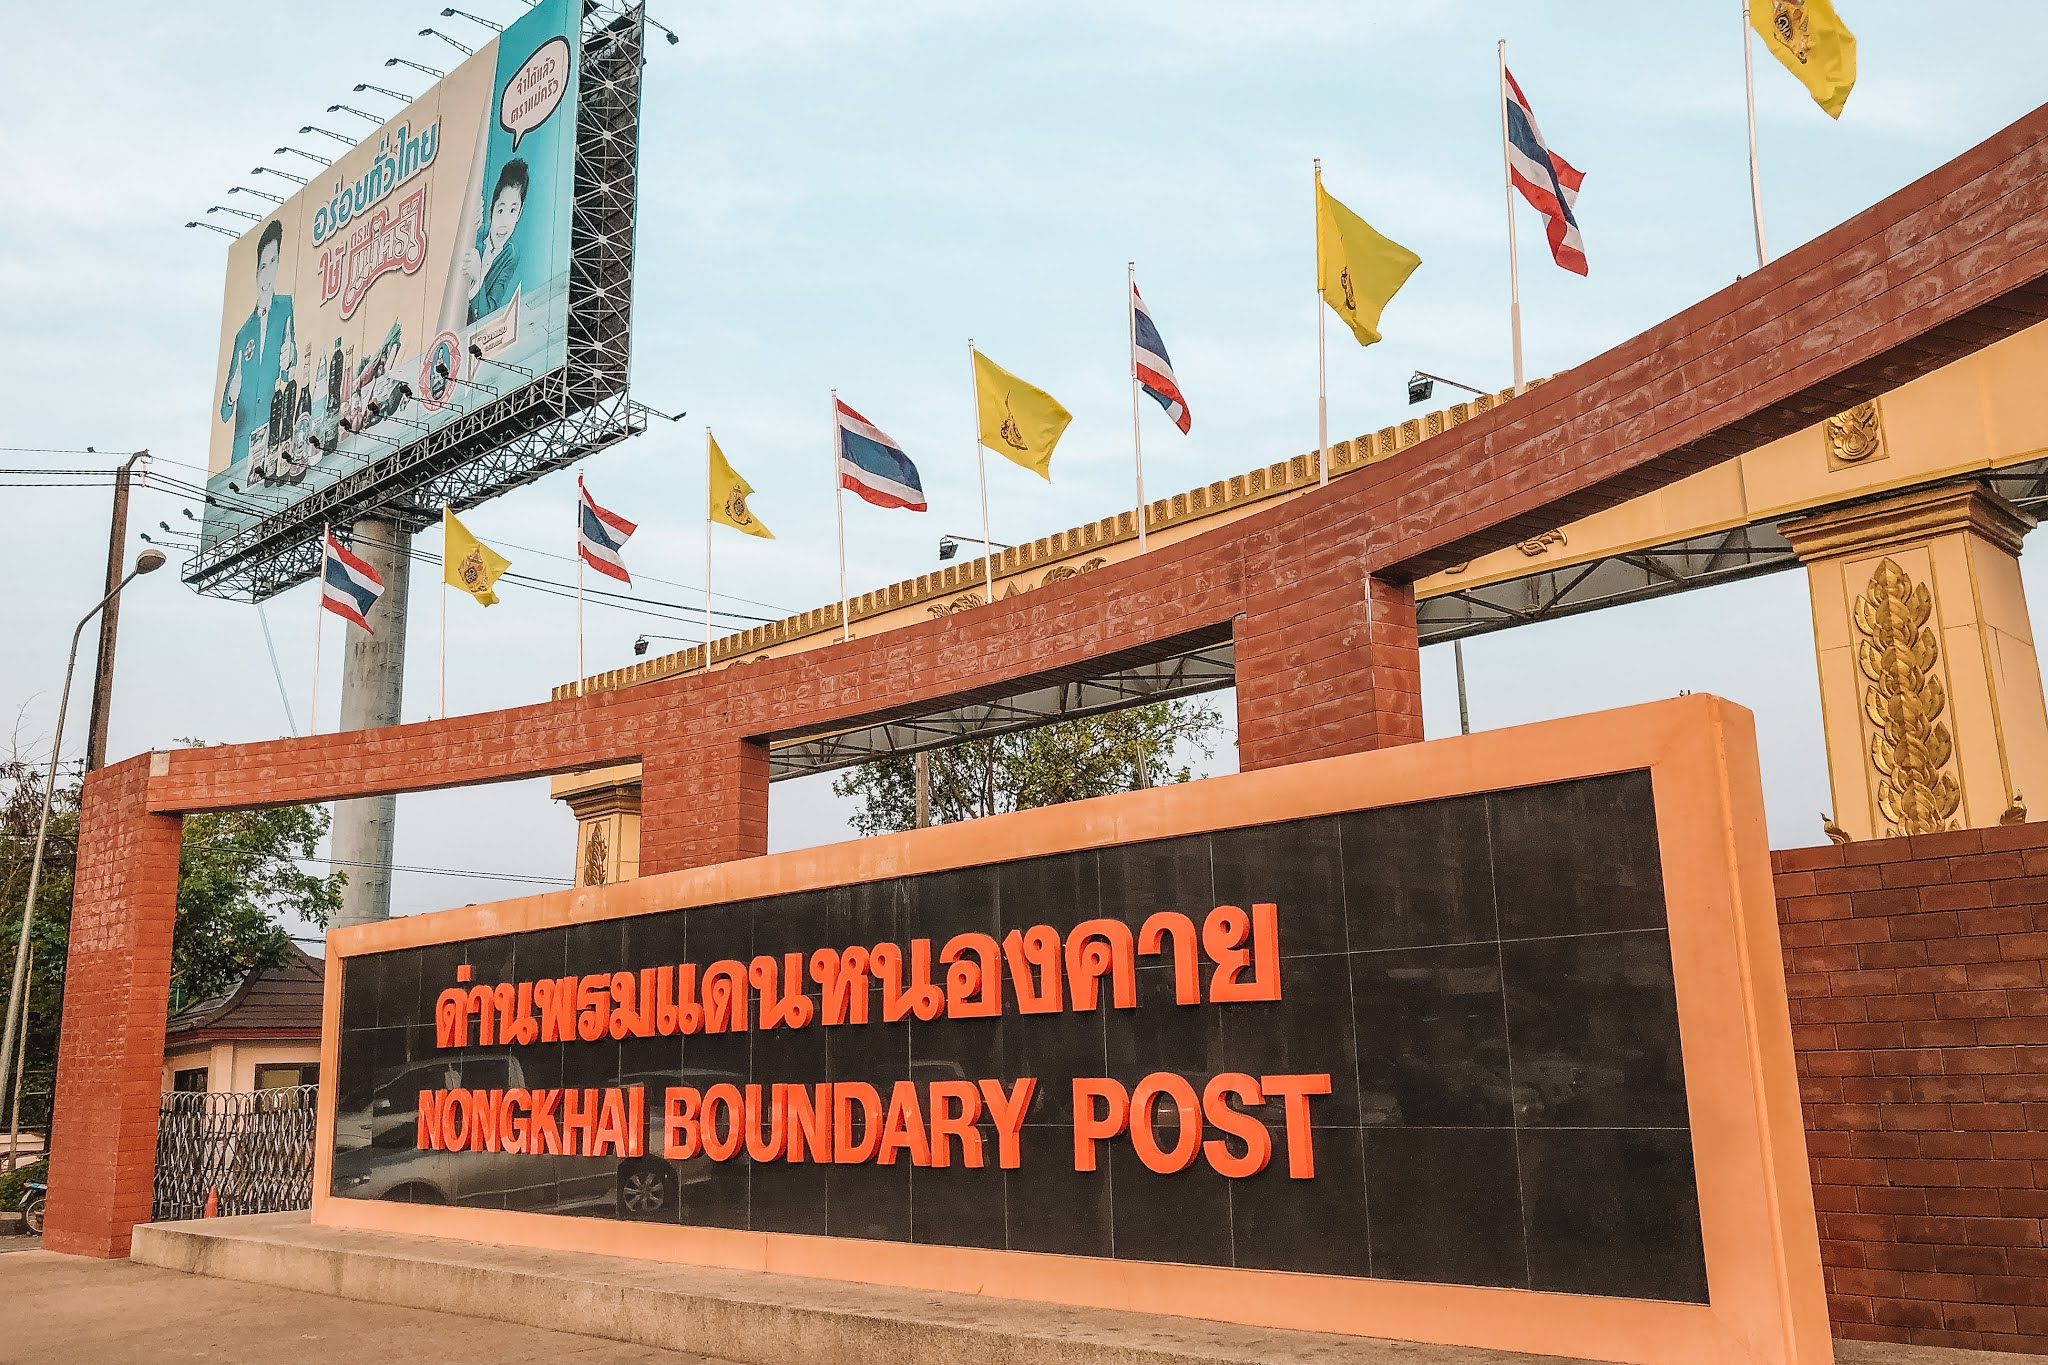 Nong Khai Boundary Post